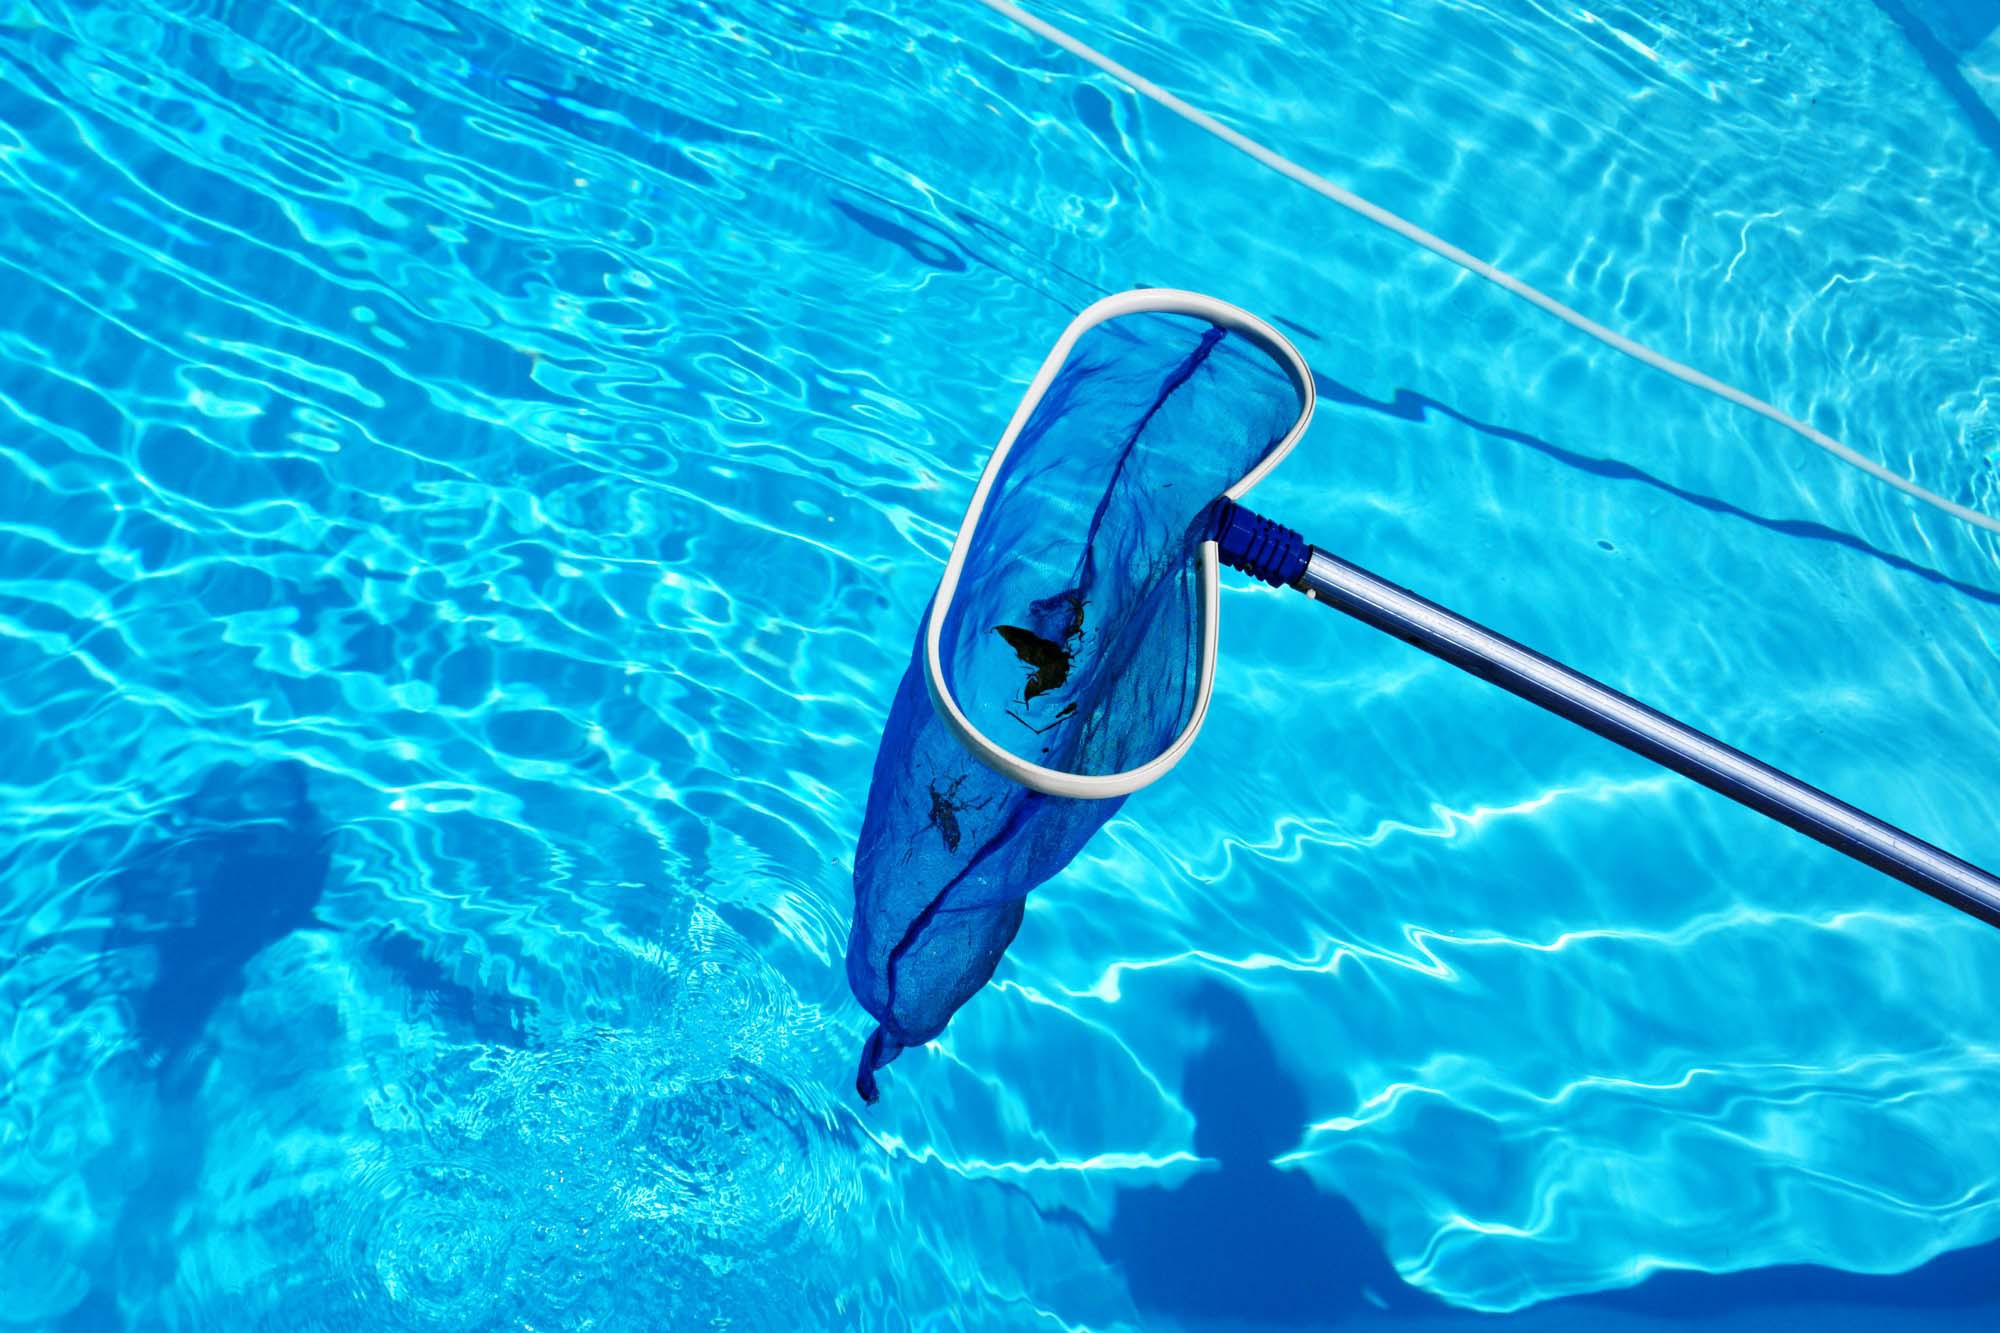 A pool net used as a part of our pool maintenance service in Watertown, CT